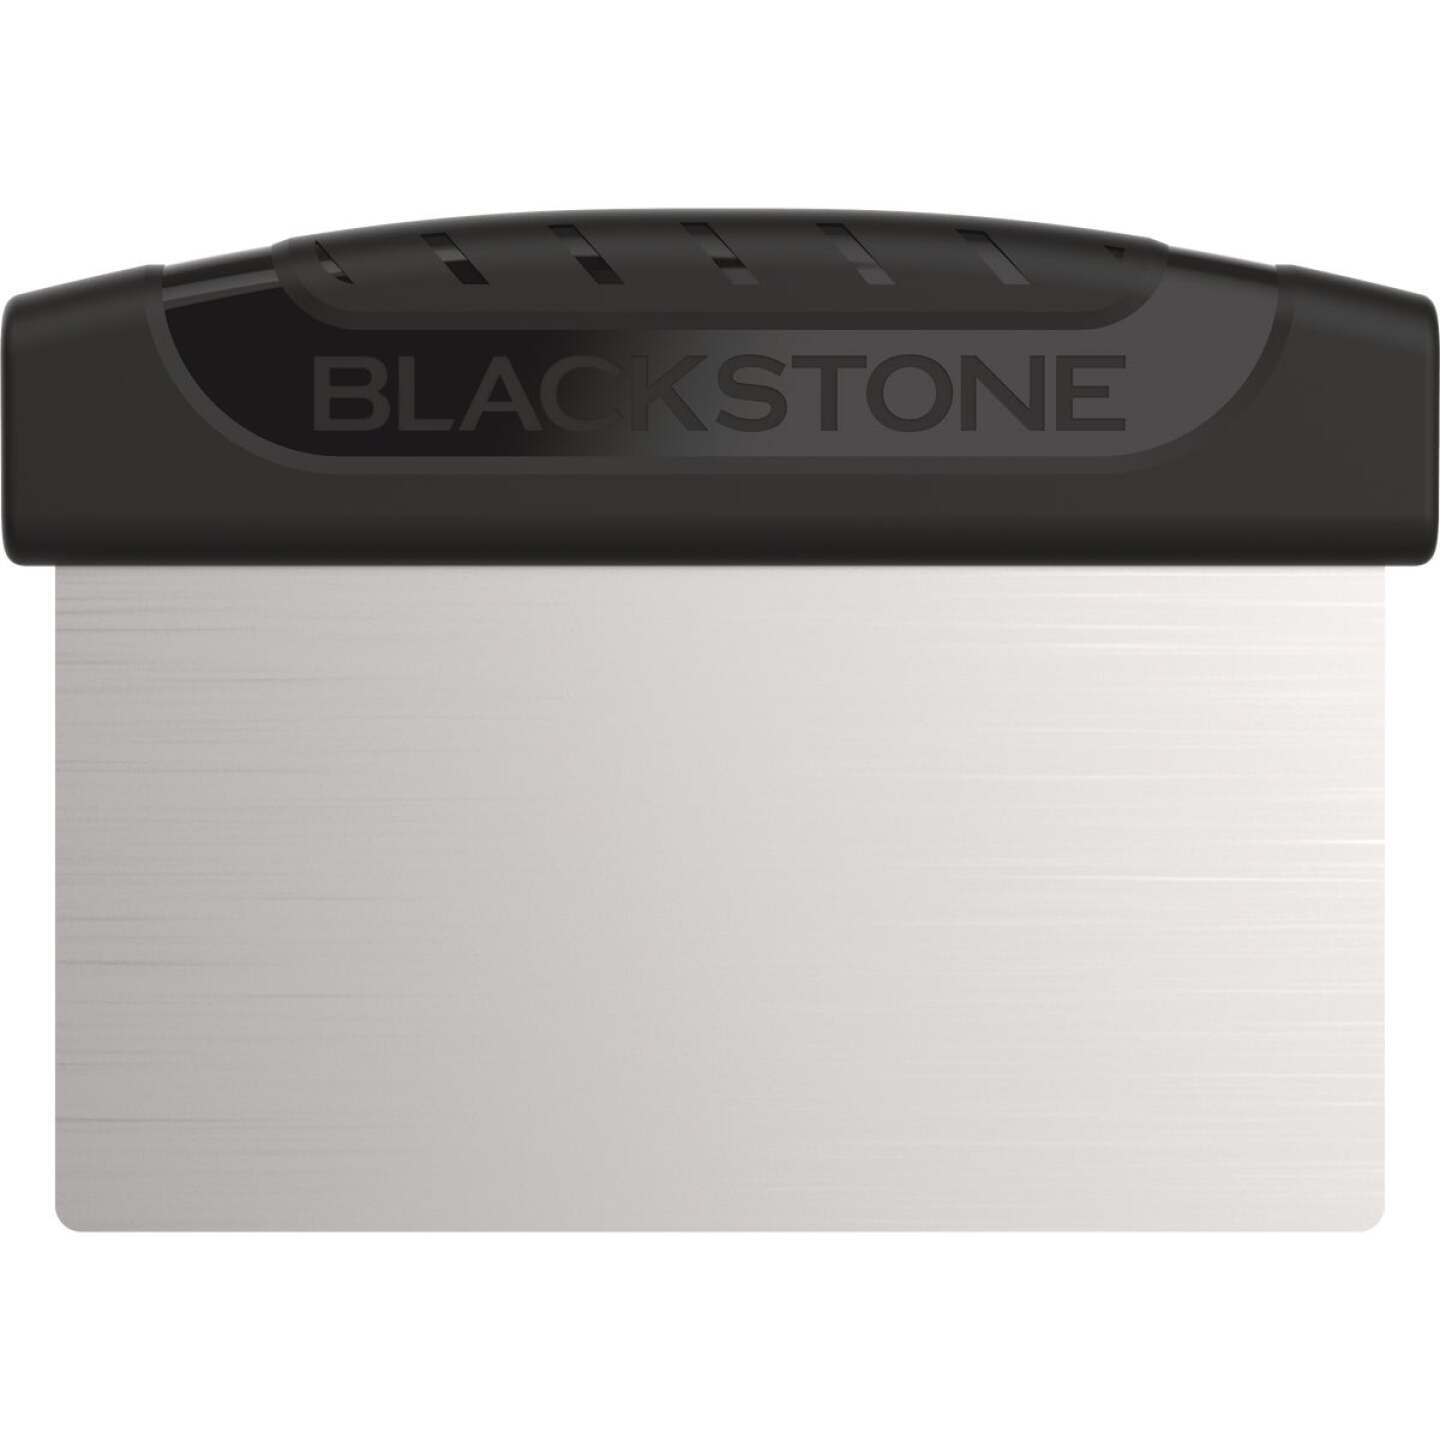 Blackstone Stainless Steel 6-Piece Griddle Tool Set Image 6